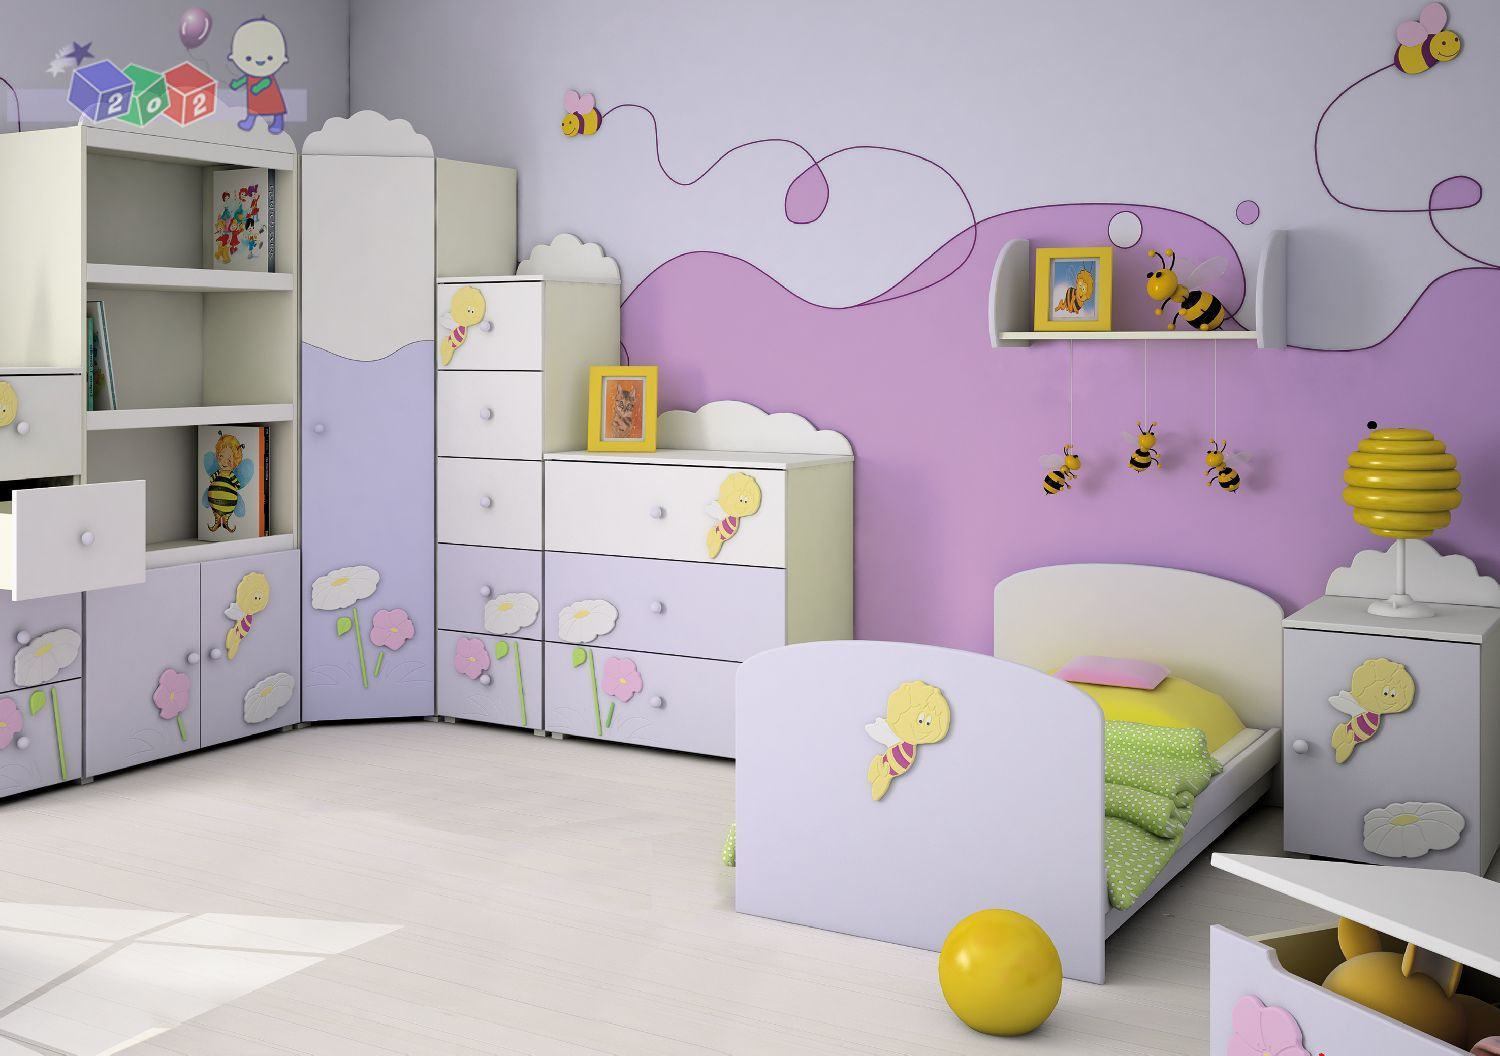 Merveilleux Remarkable Design For Bedroom For Kid Ideas With Marvelous Purple Wall  Added With Blue Wooden Bed